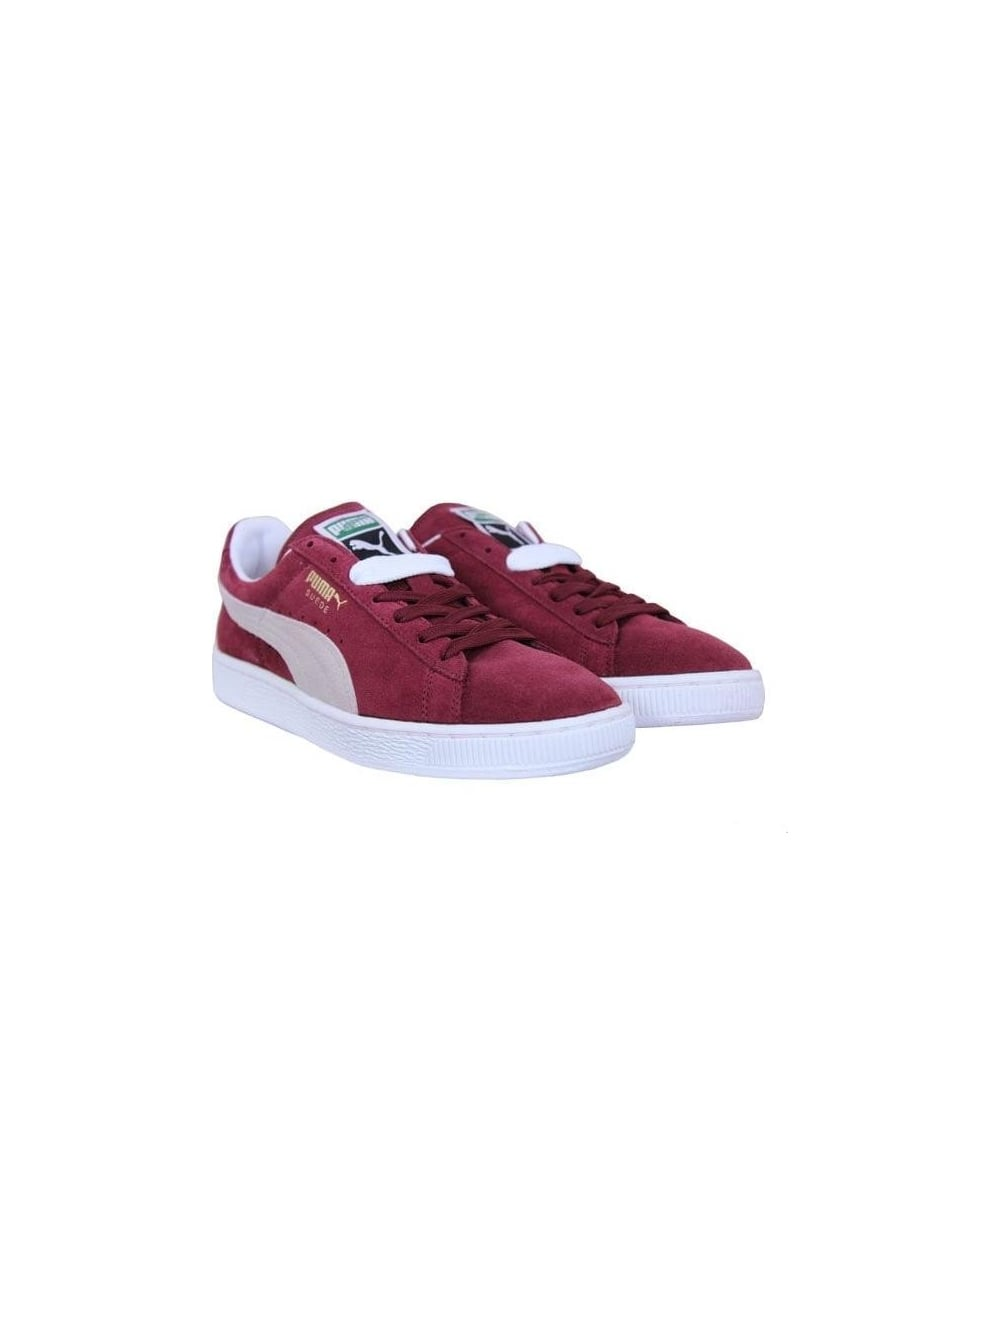 d45a2acb85c573 Puma Suede Classic Trainers in Burgundy - Northern Threads